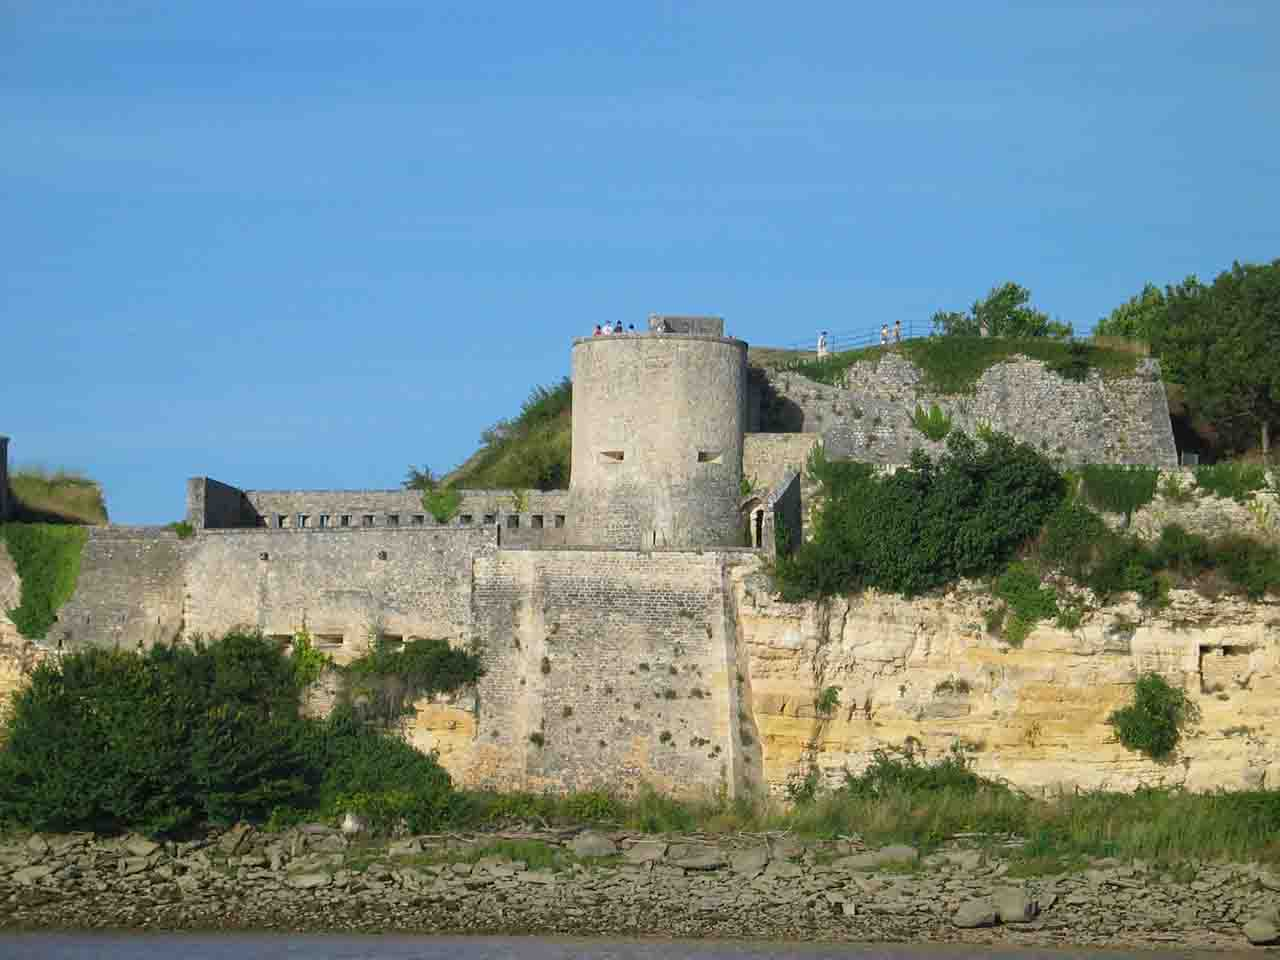 Blaye Citadel and Vauban's bolt